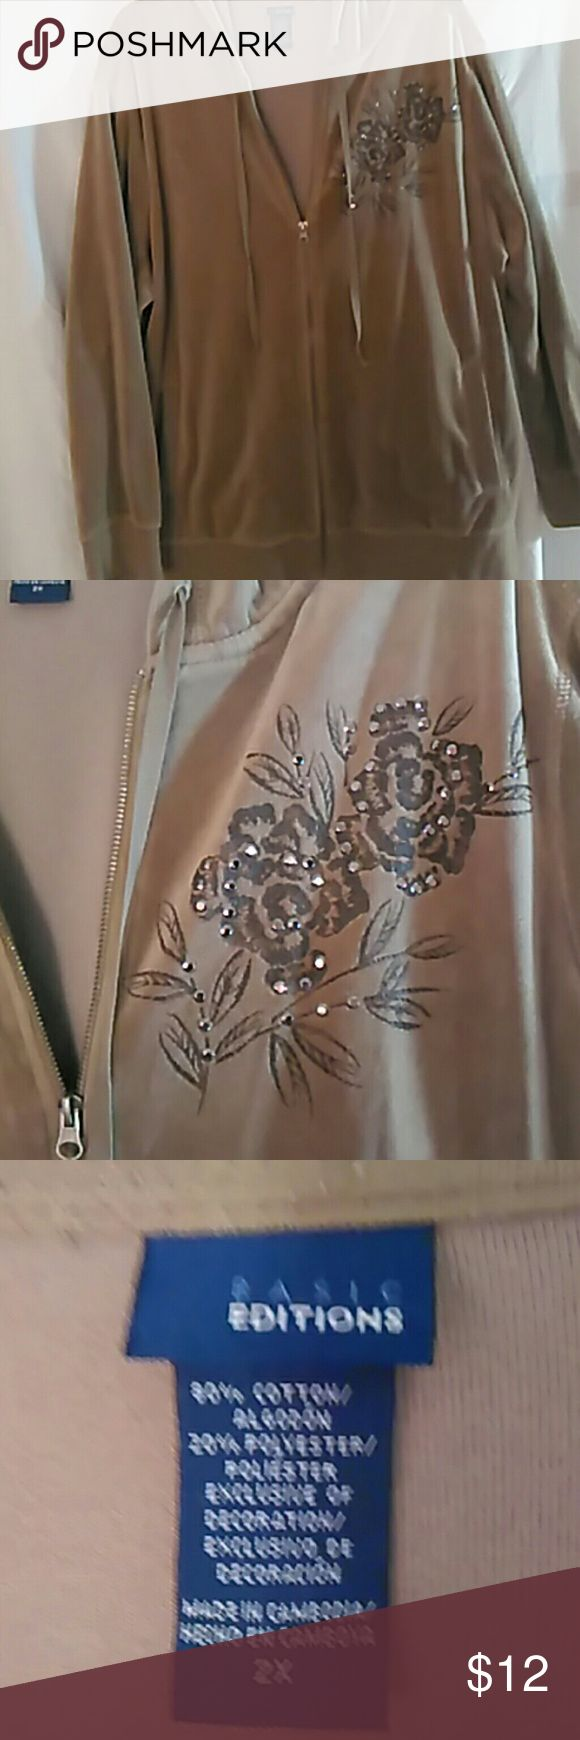 2X velour jacket, light brown w/dark brown flower Velour plus size zip up jacket 2X Basic Editions Jackets & Coats